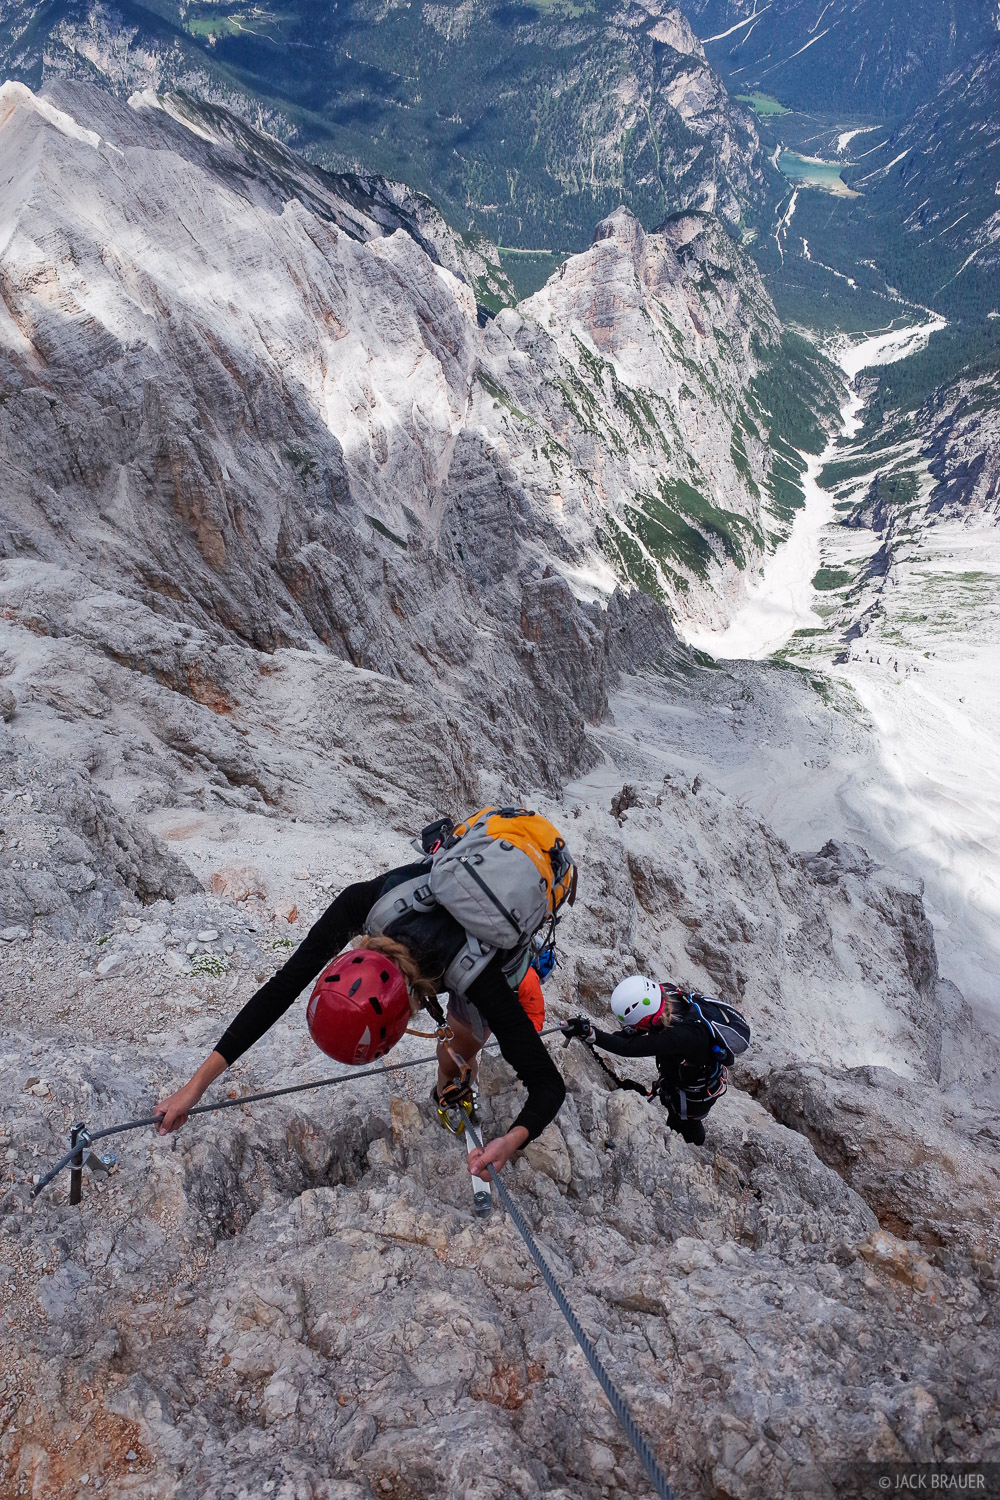 Dolomites, Italy, via ferrata, Cristallo, Alps, photo